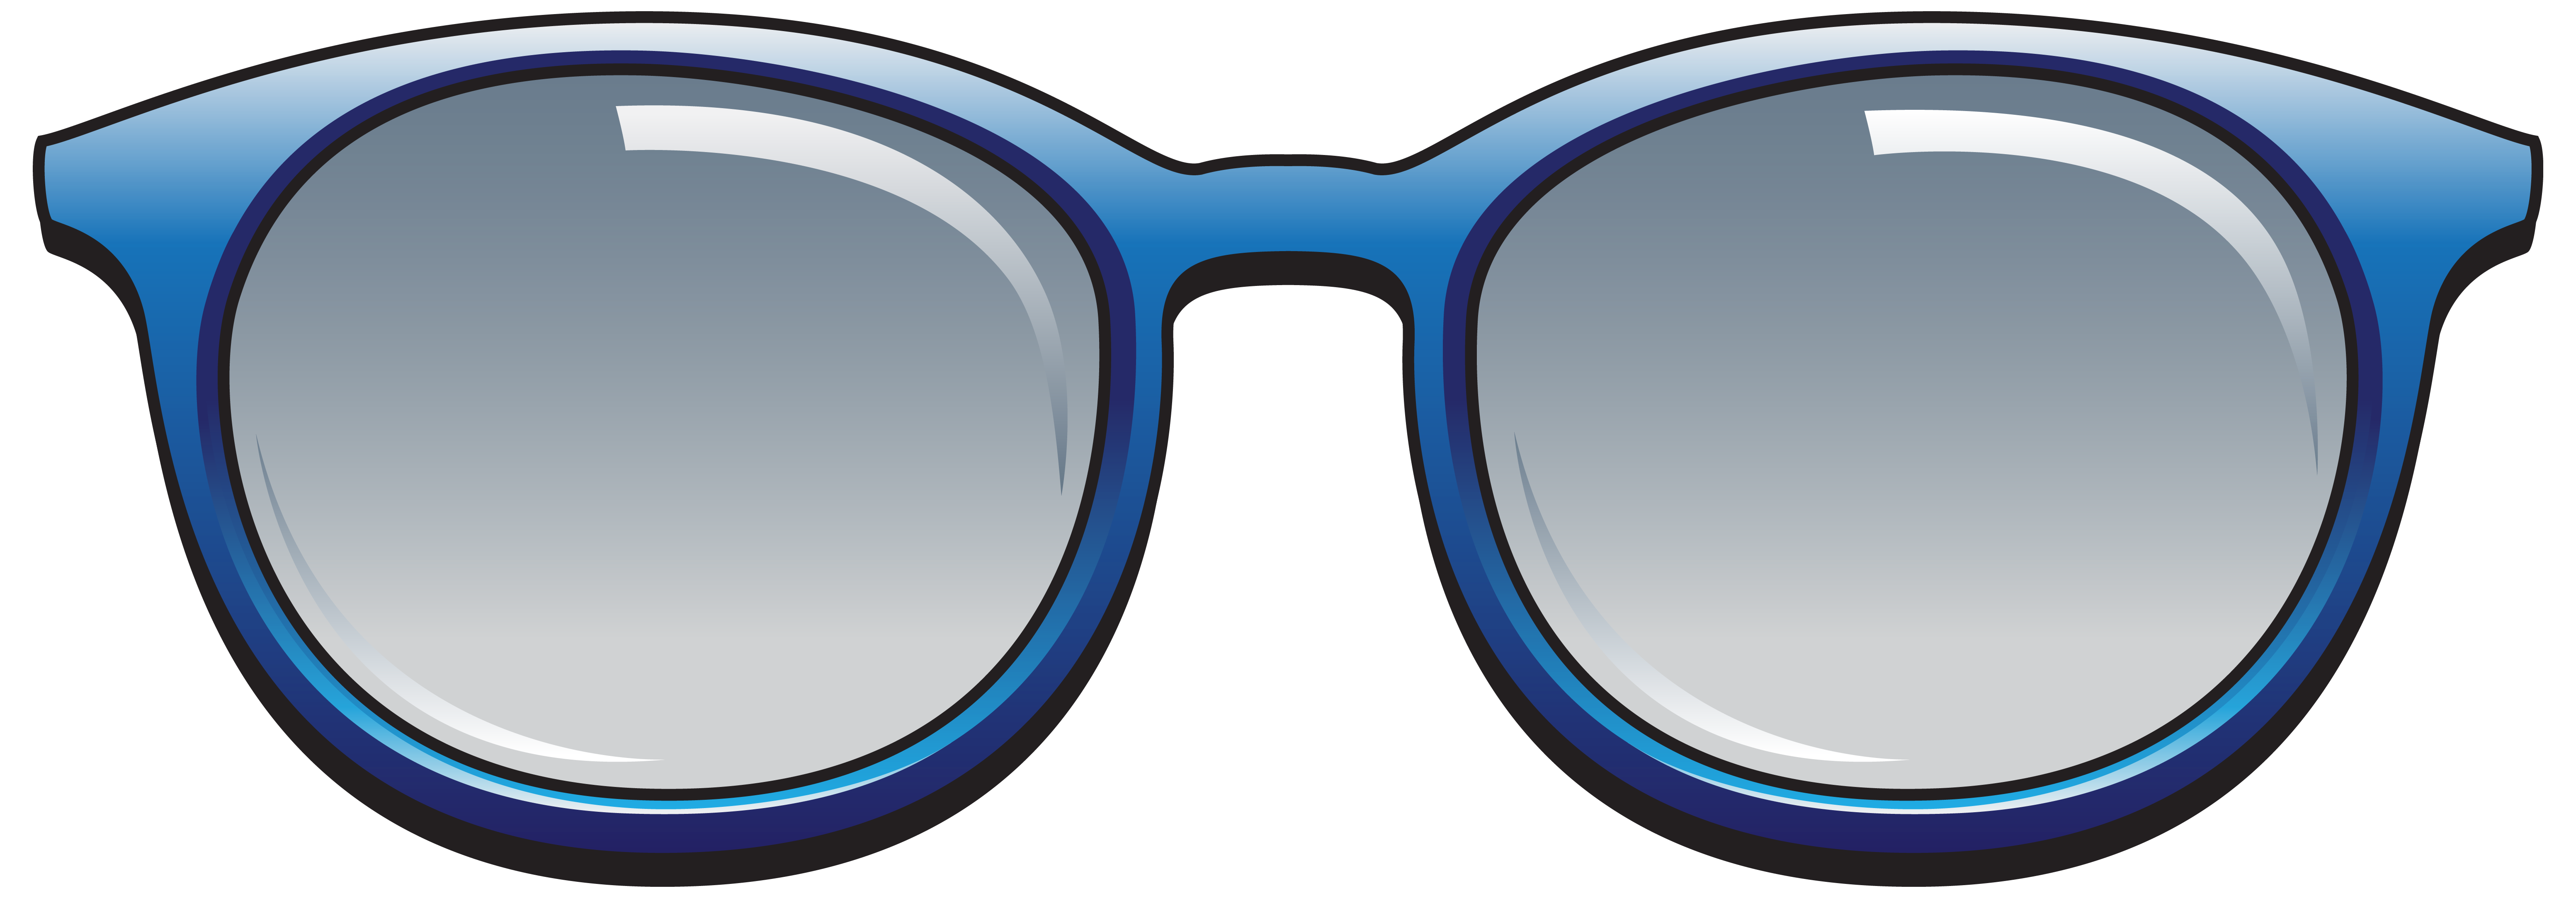 Free sun glasses clipart clip freeuse library Blue Sunglasses PNG Clipart Image | Gallery Yopriceville - High ... clip freeuse library